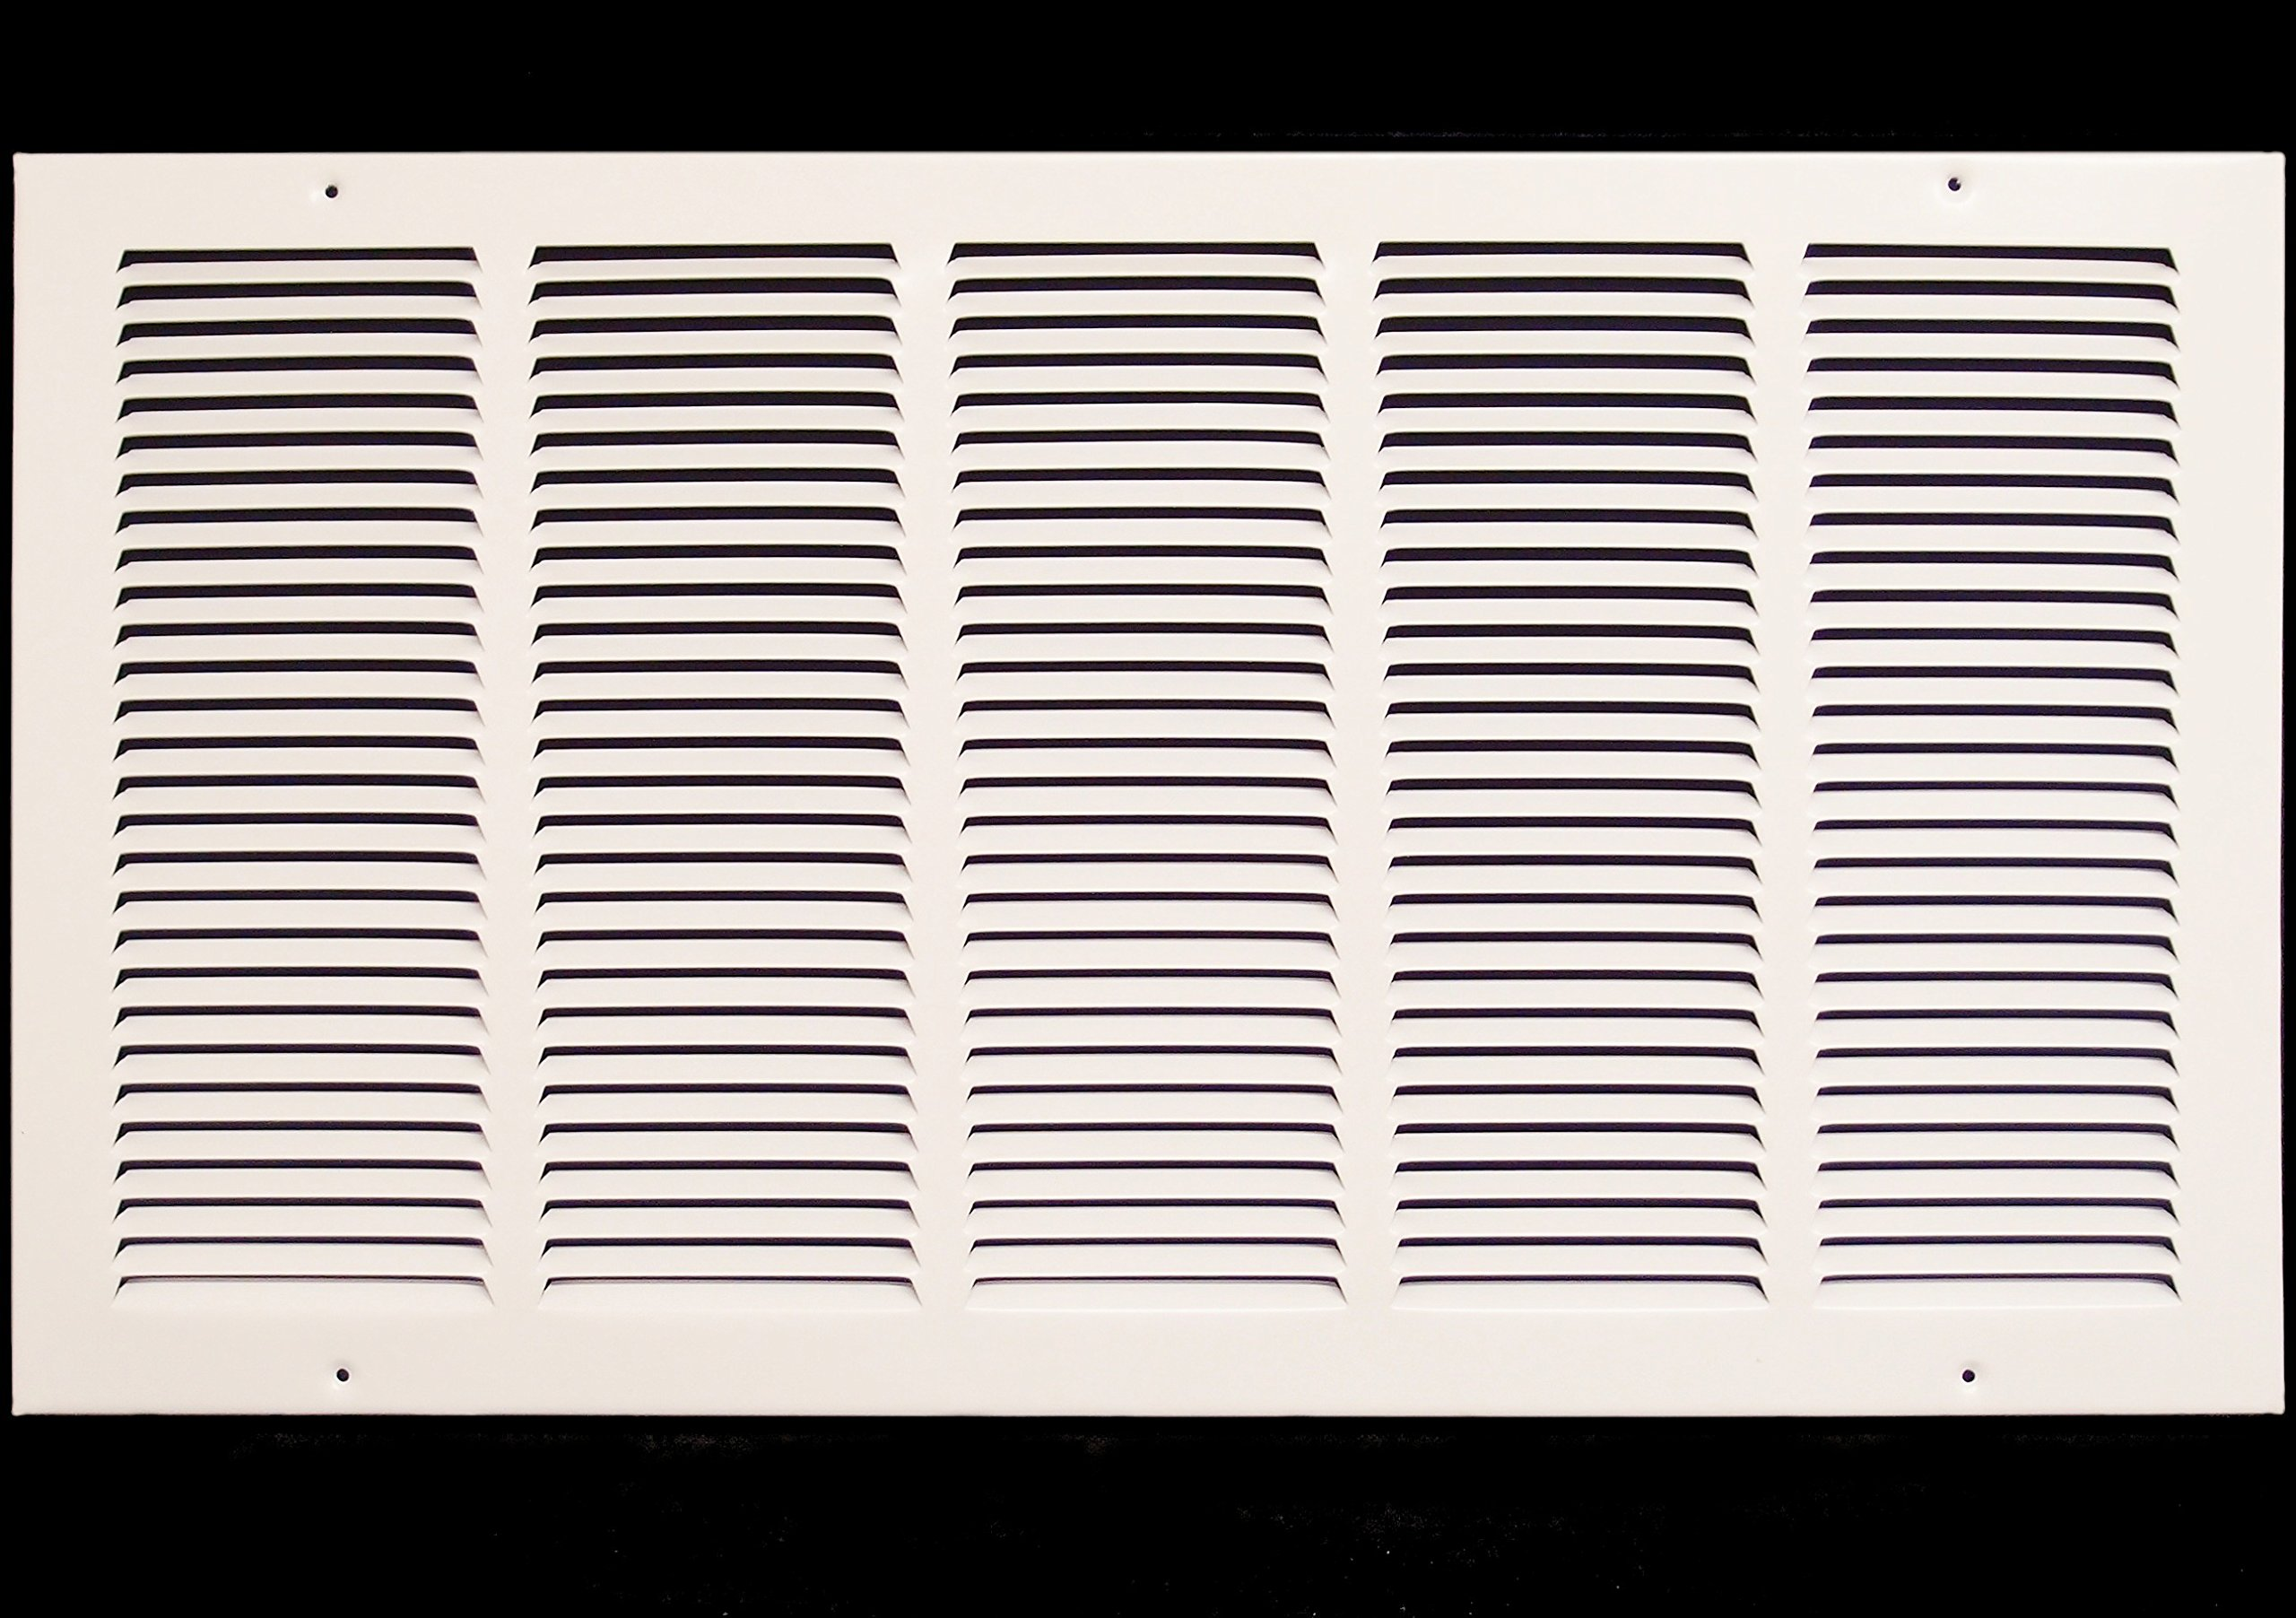 26''w X 14''h Steel Return Air Grilles - Sidewall and Cieling - HVAC DUCT COVER - White [Outer Dimensions: 27.75''w X 15.75''h]